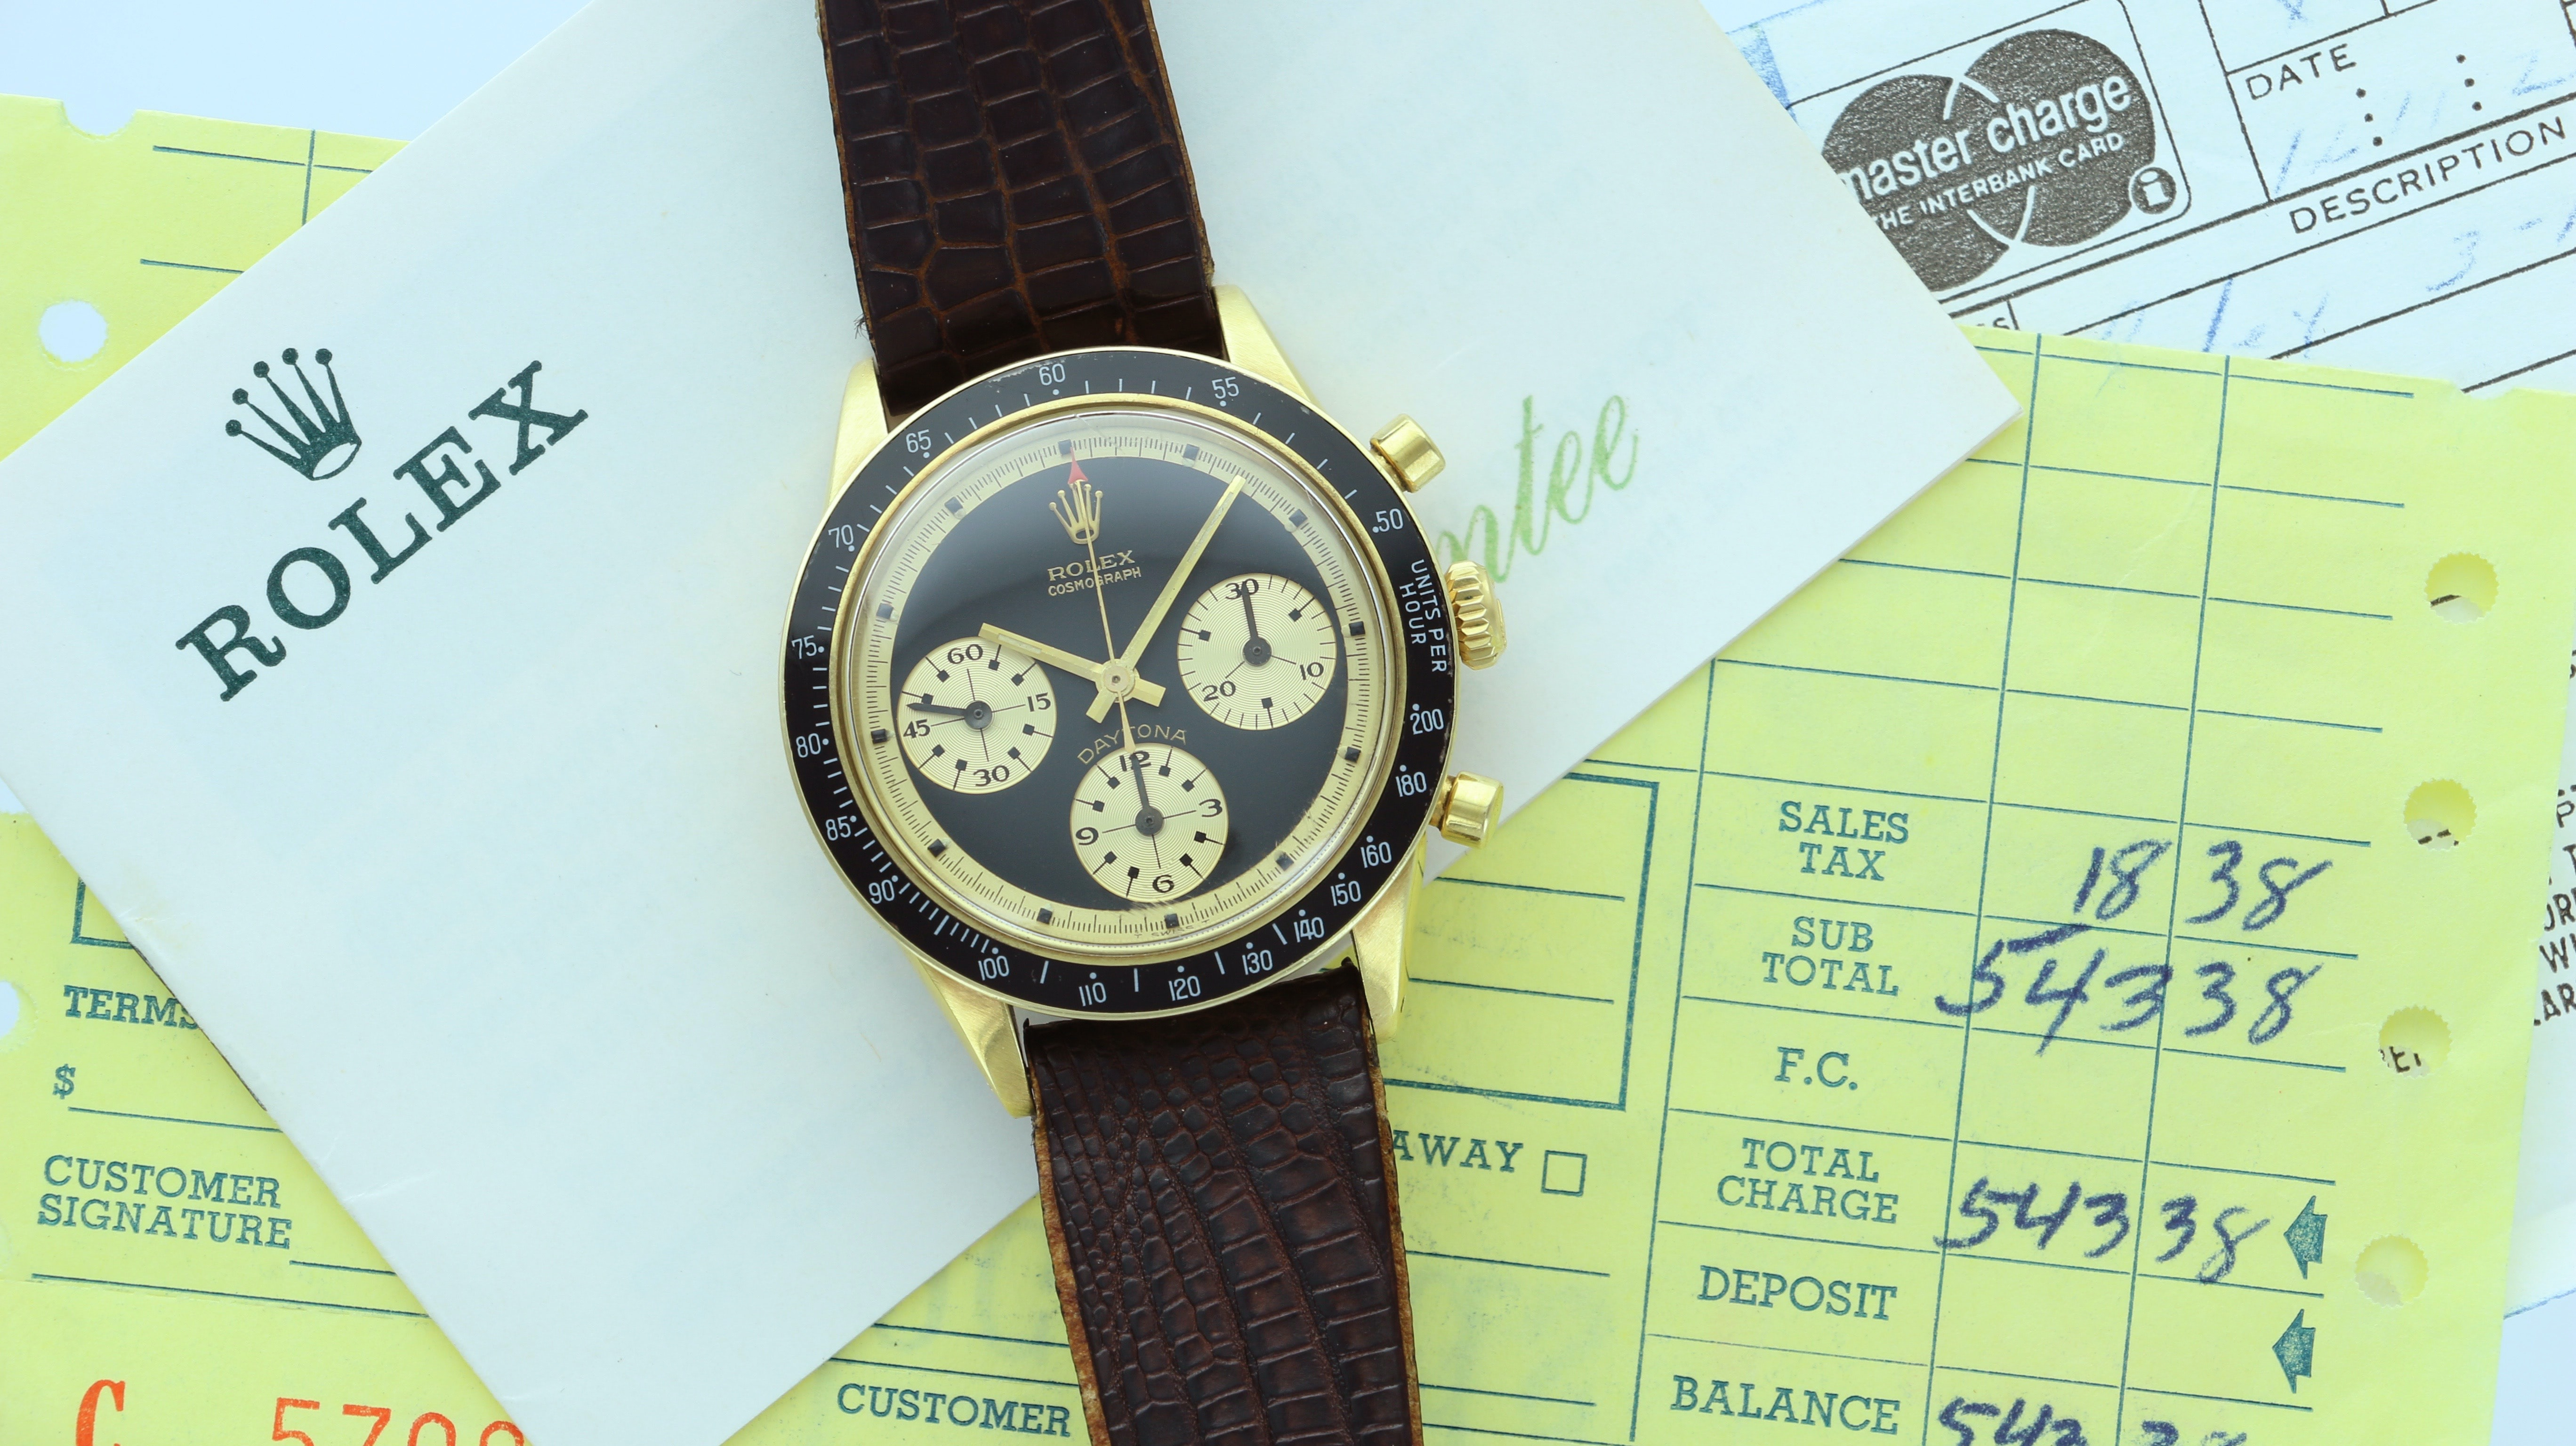 Rolex Daytona Antiques Roadshow  Man Buys Rolex Daytona For $543 in 1973, Takes It To Antiques Roadshow Where He's Told It's Worth $100,000, Though Actually Worth Even More (Oh, And It's Now For Sale) IMG 7778 1